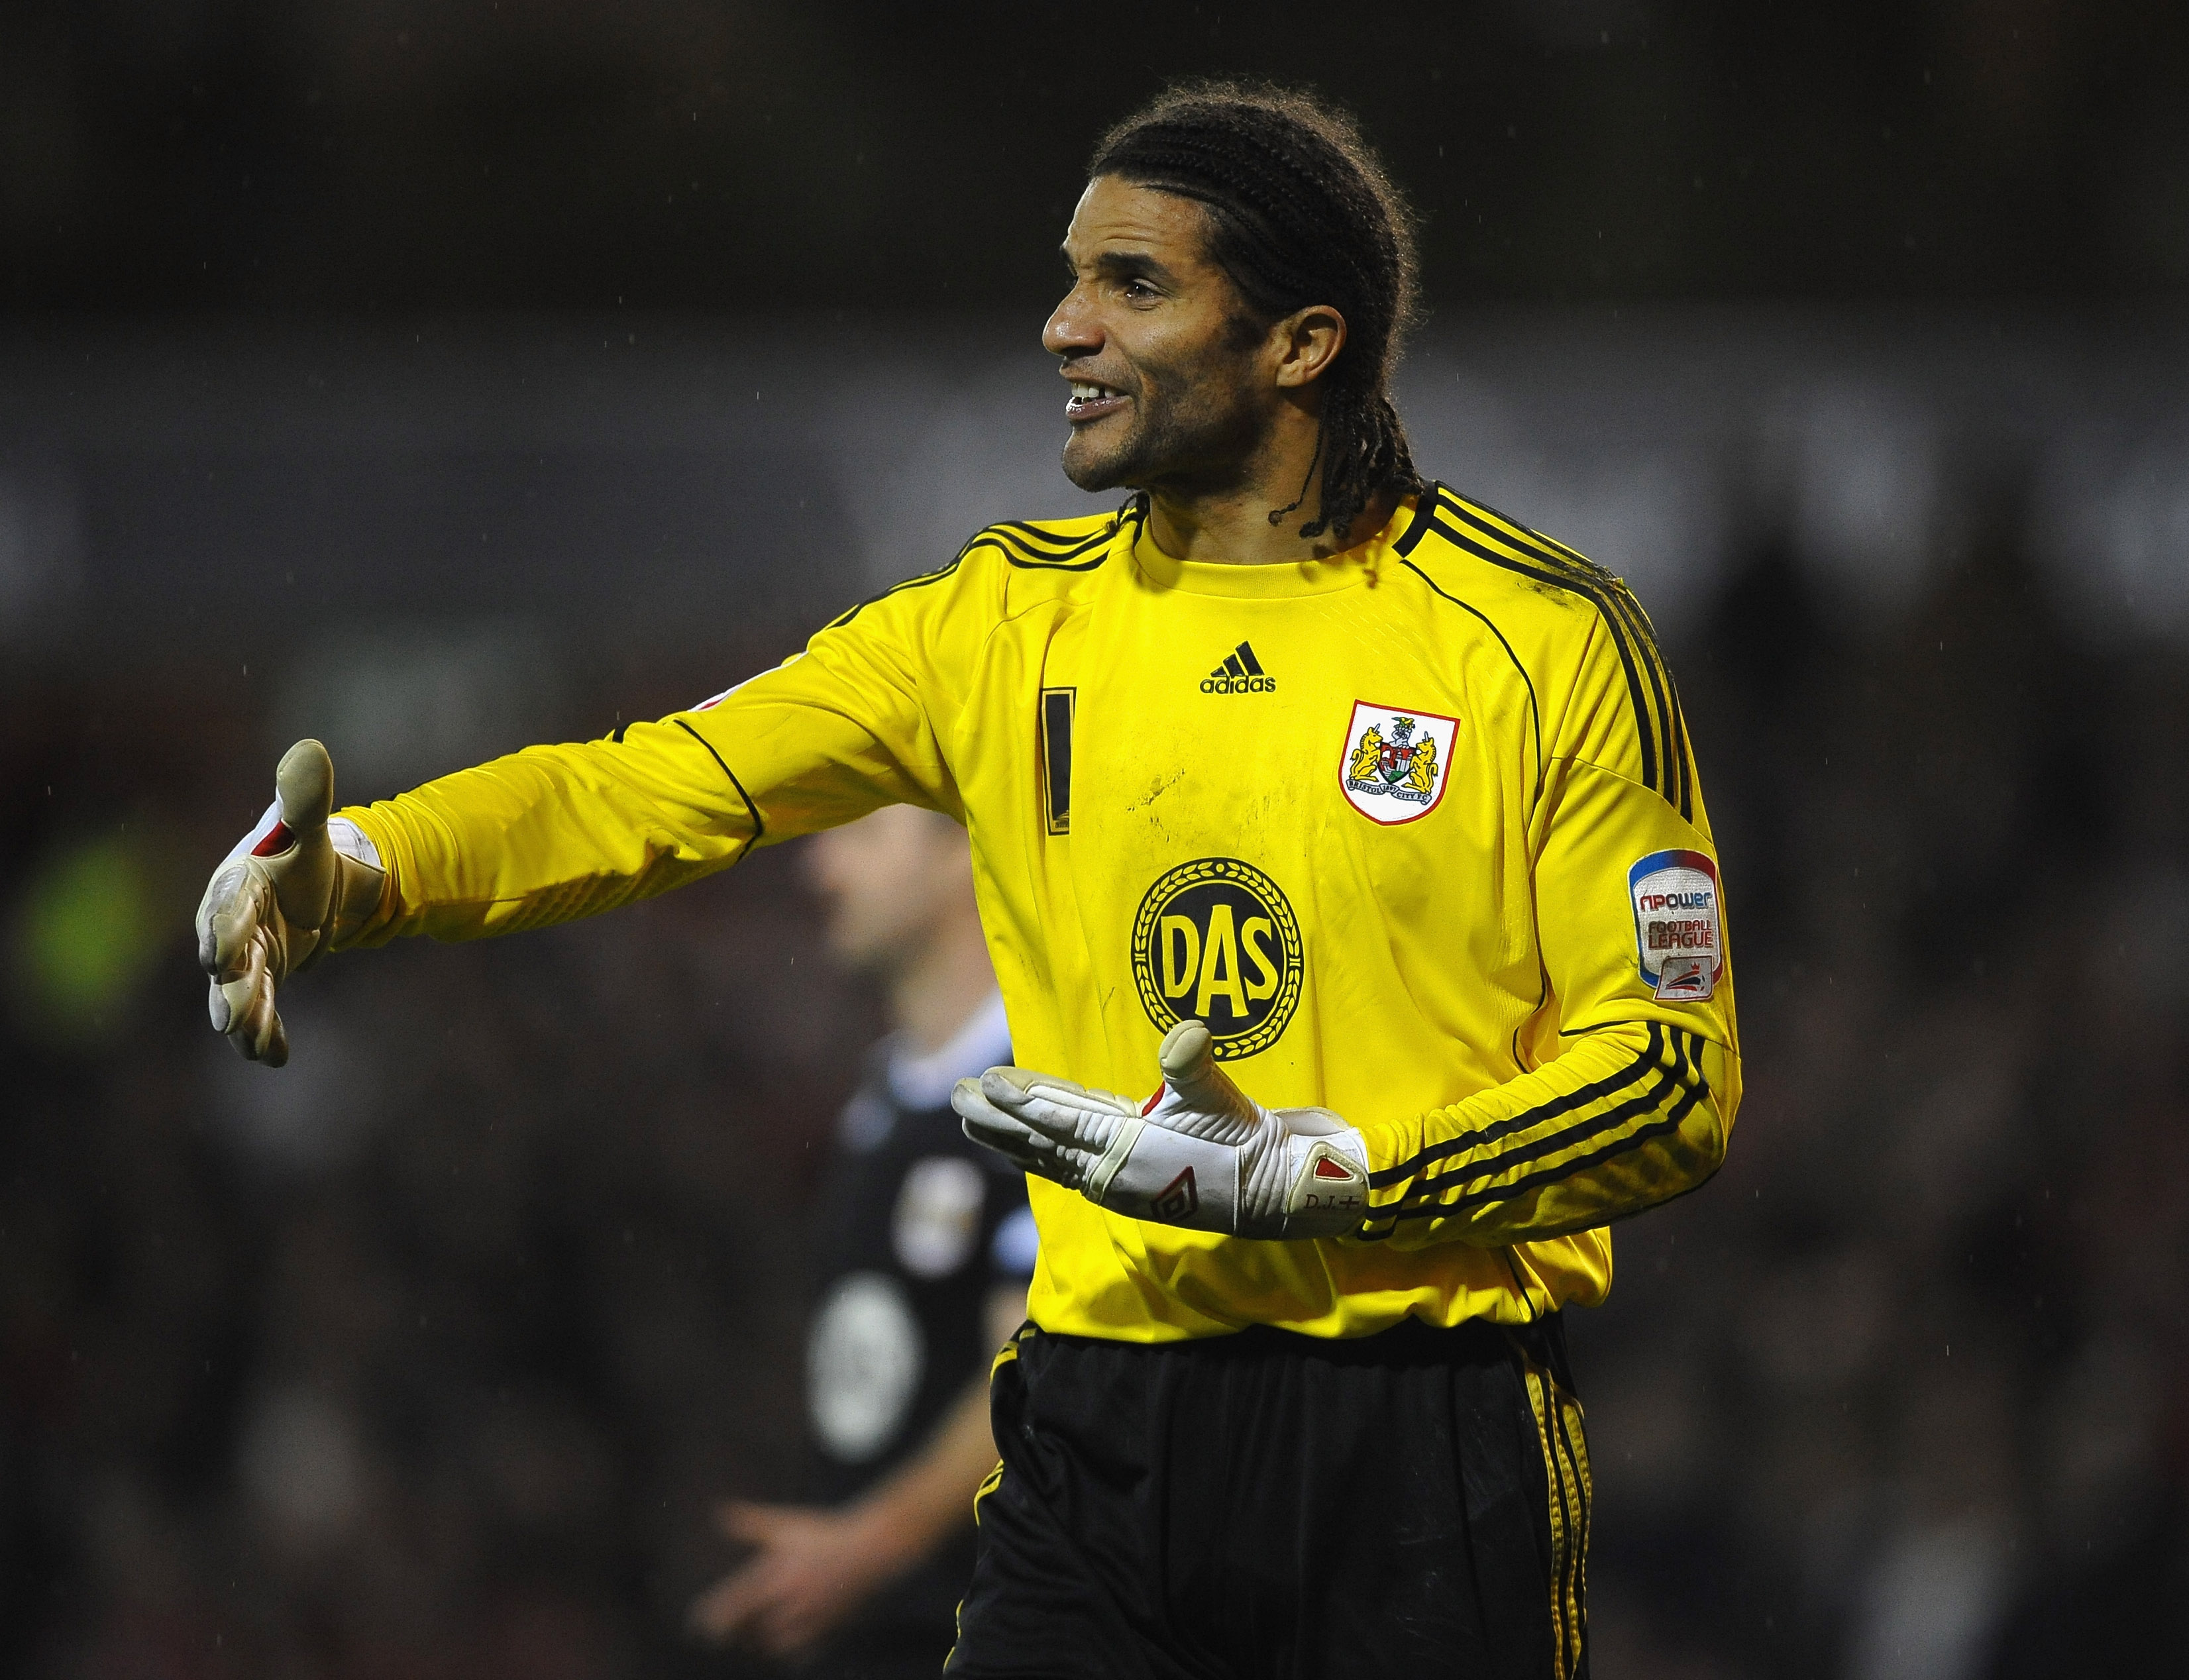 NOTTINGHAM, ENGLAND - JANUARY 25: David James of Bristol City in action during the npower Championship match between Nottingham Forest and Bristol City at City Ground on January 25, 2011 in Nottingham, England.  (Photo by Laurence Griffiths/Getty Images)